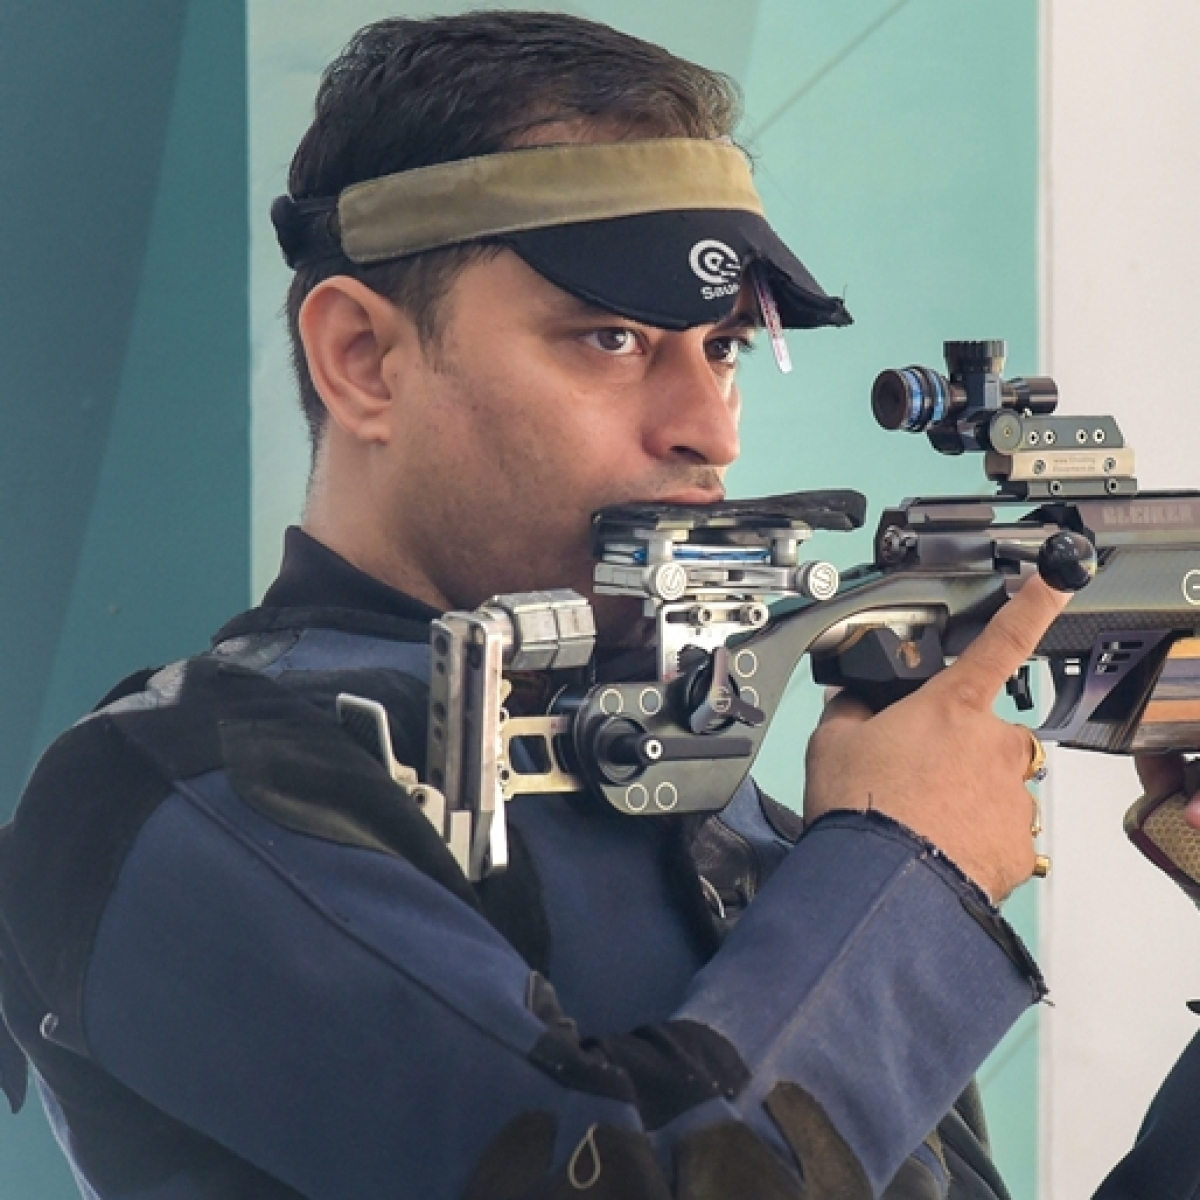 India to host Commonwealth Games shooting, archery